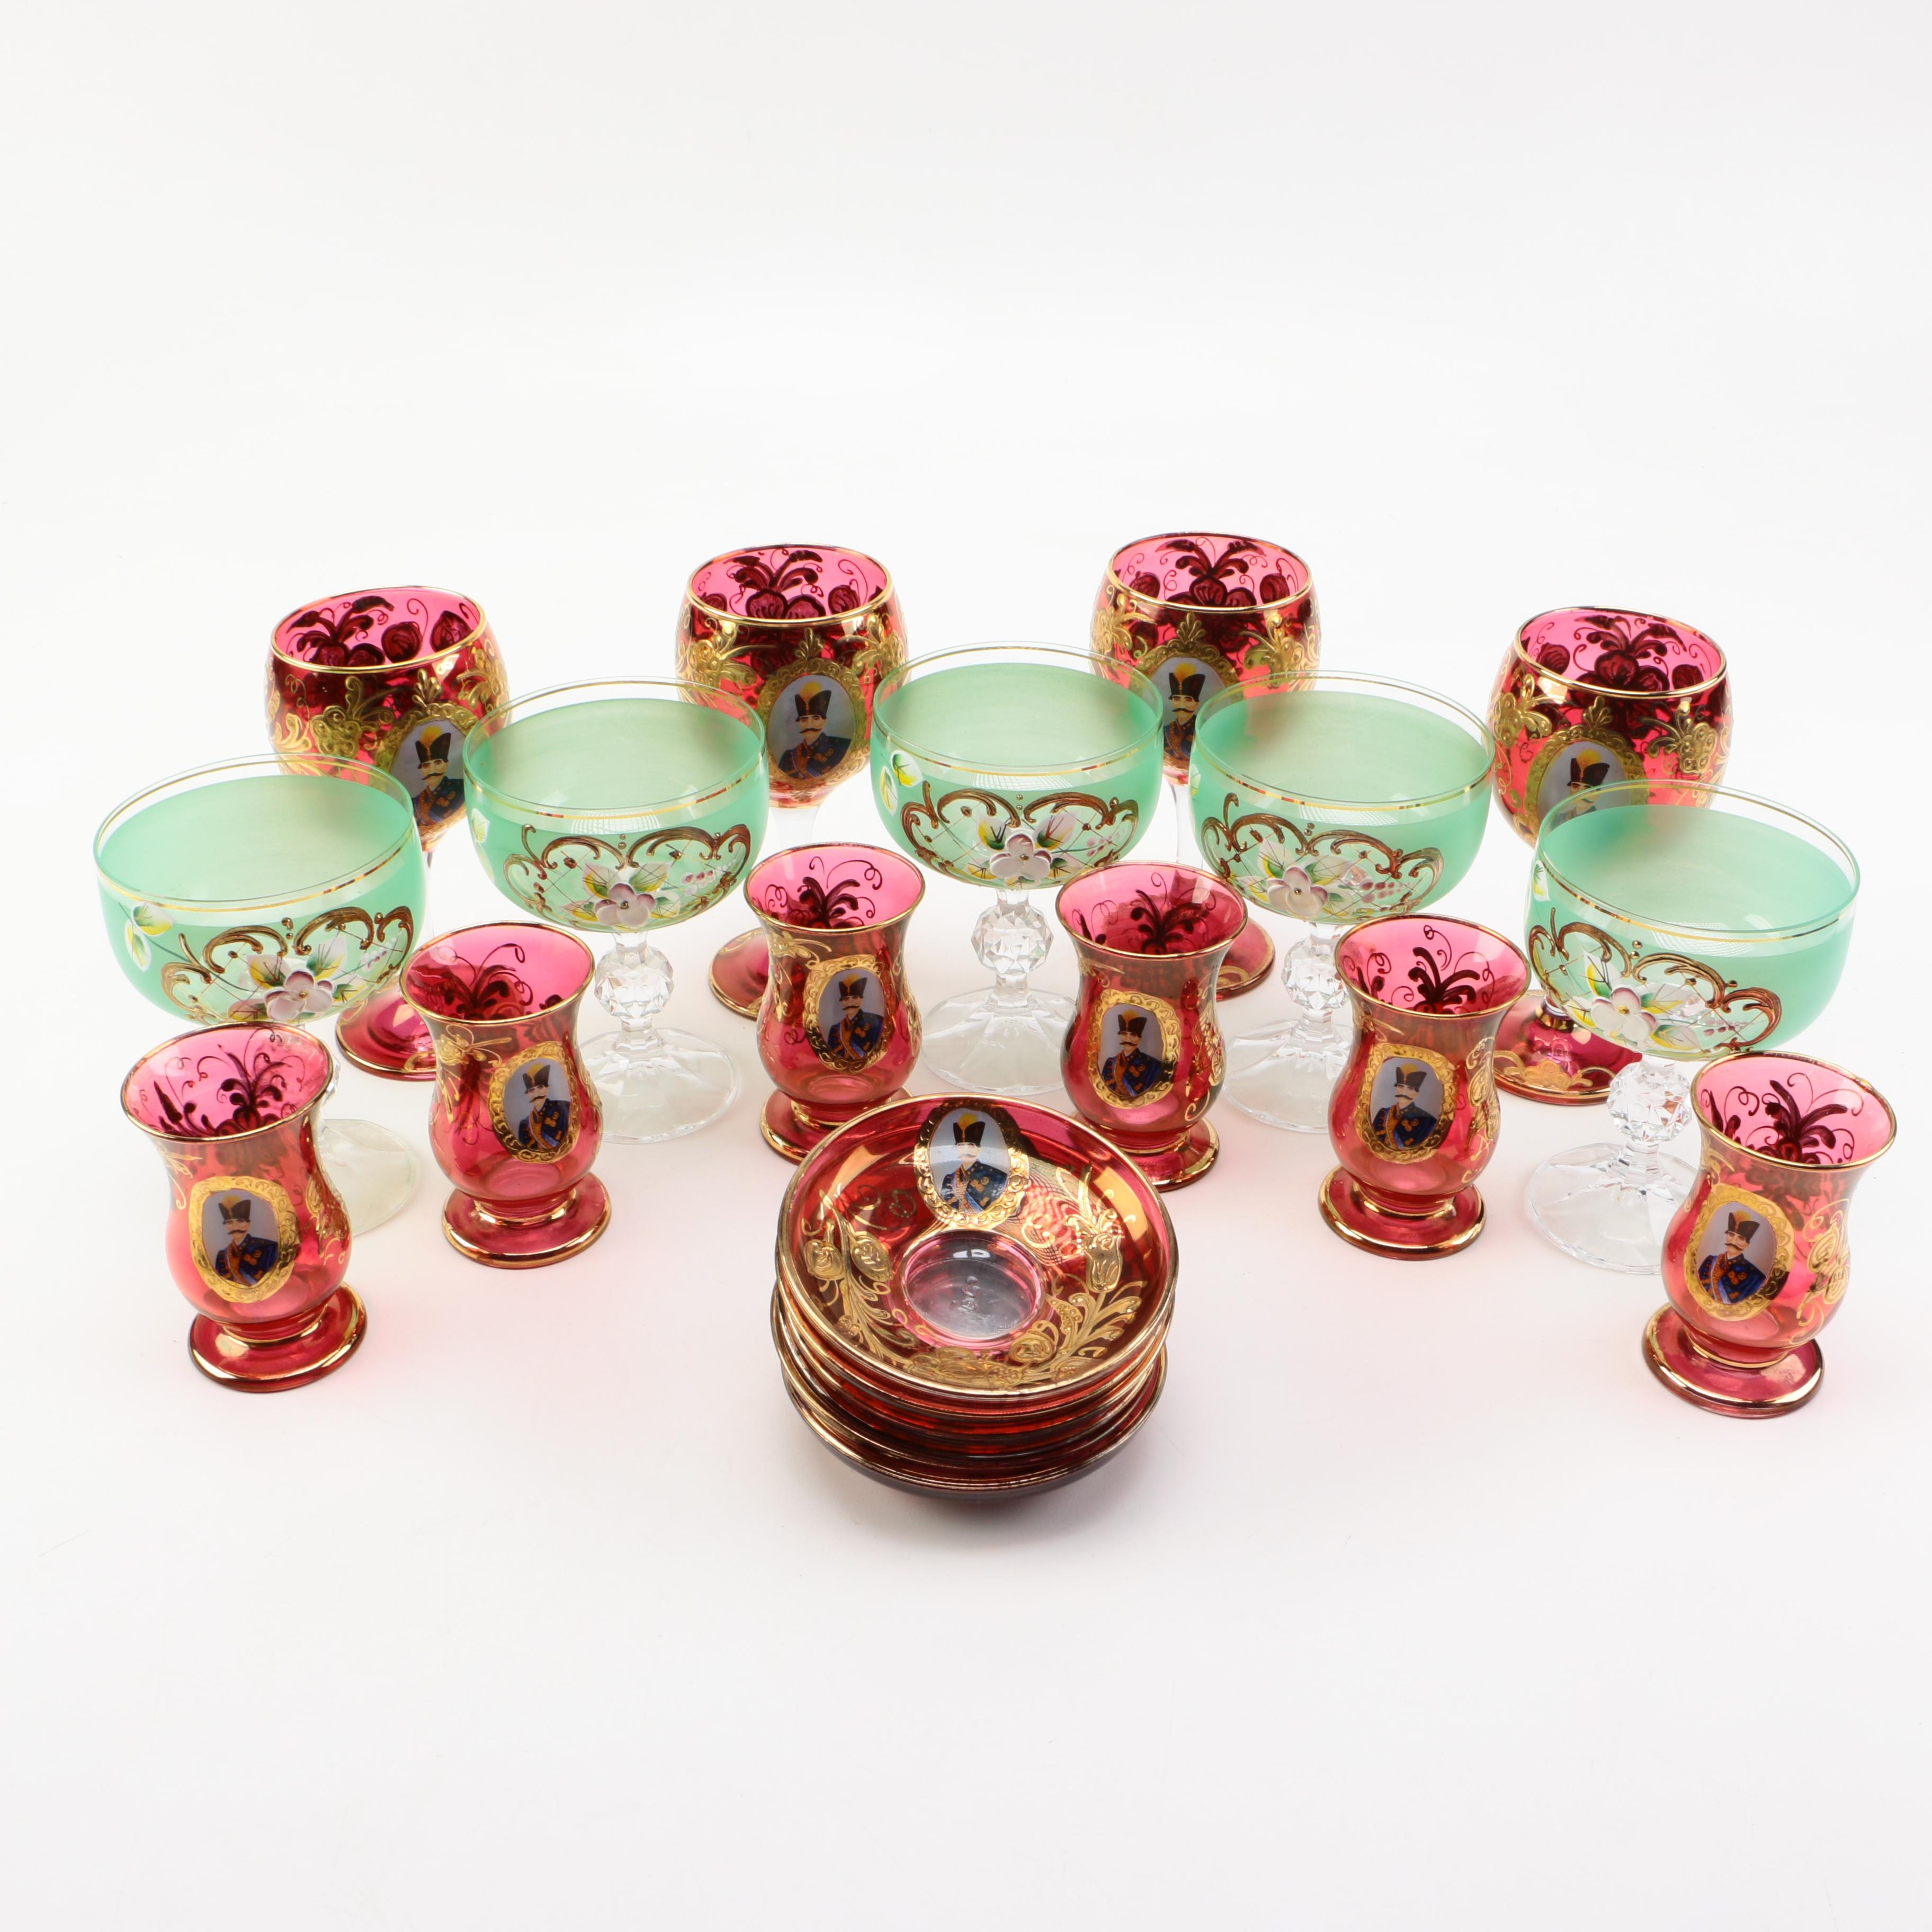 Hand-painted Glass Stemware and Saucers